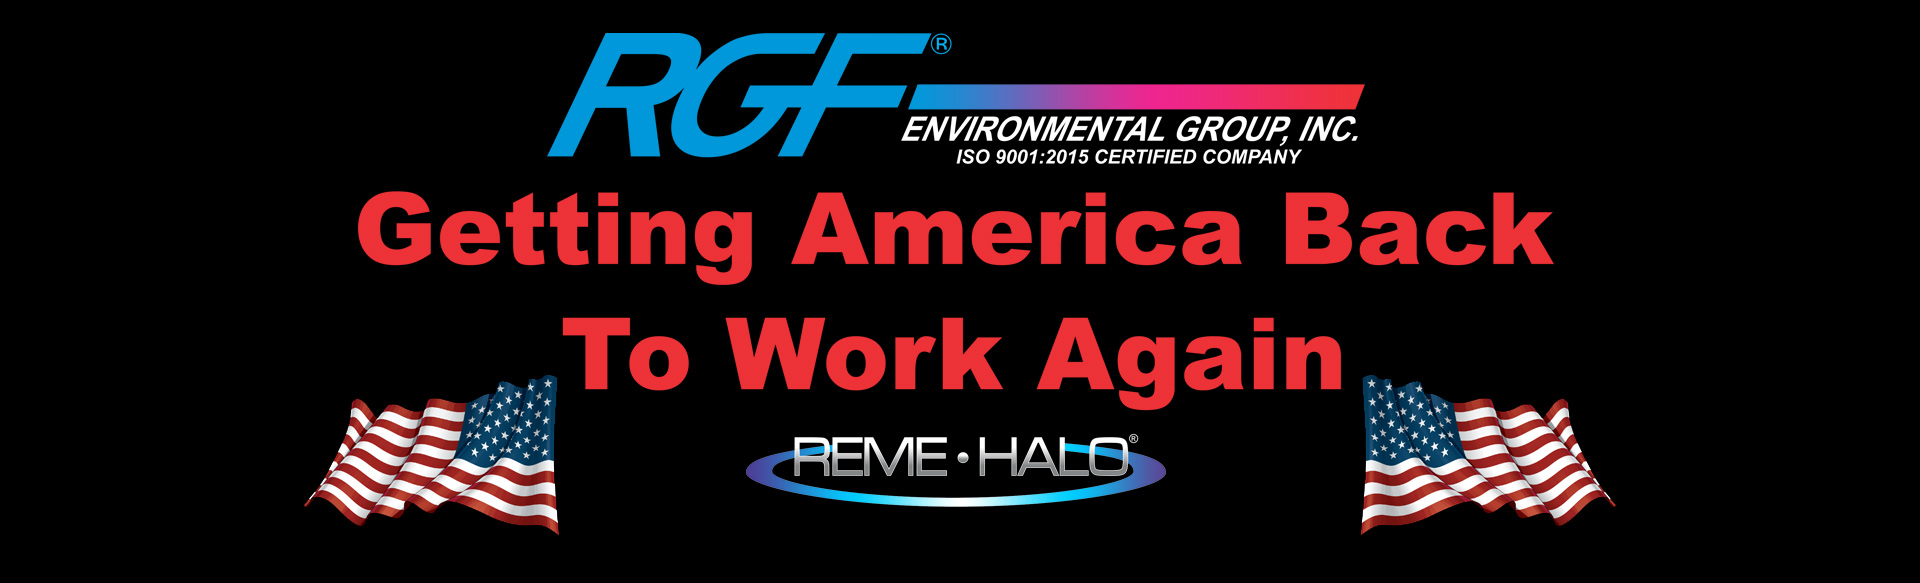 Getting America back to work again banner